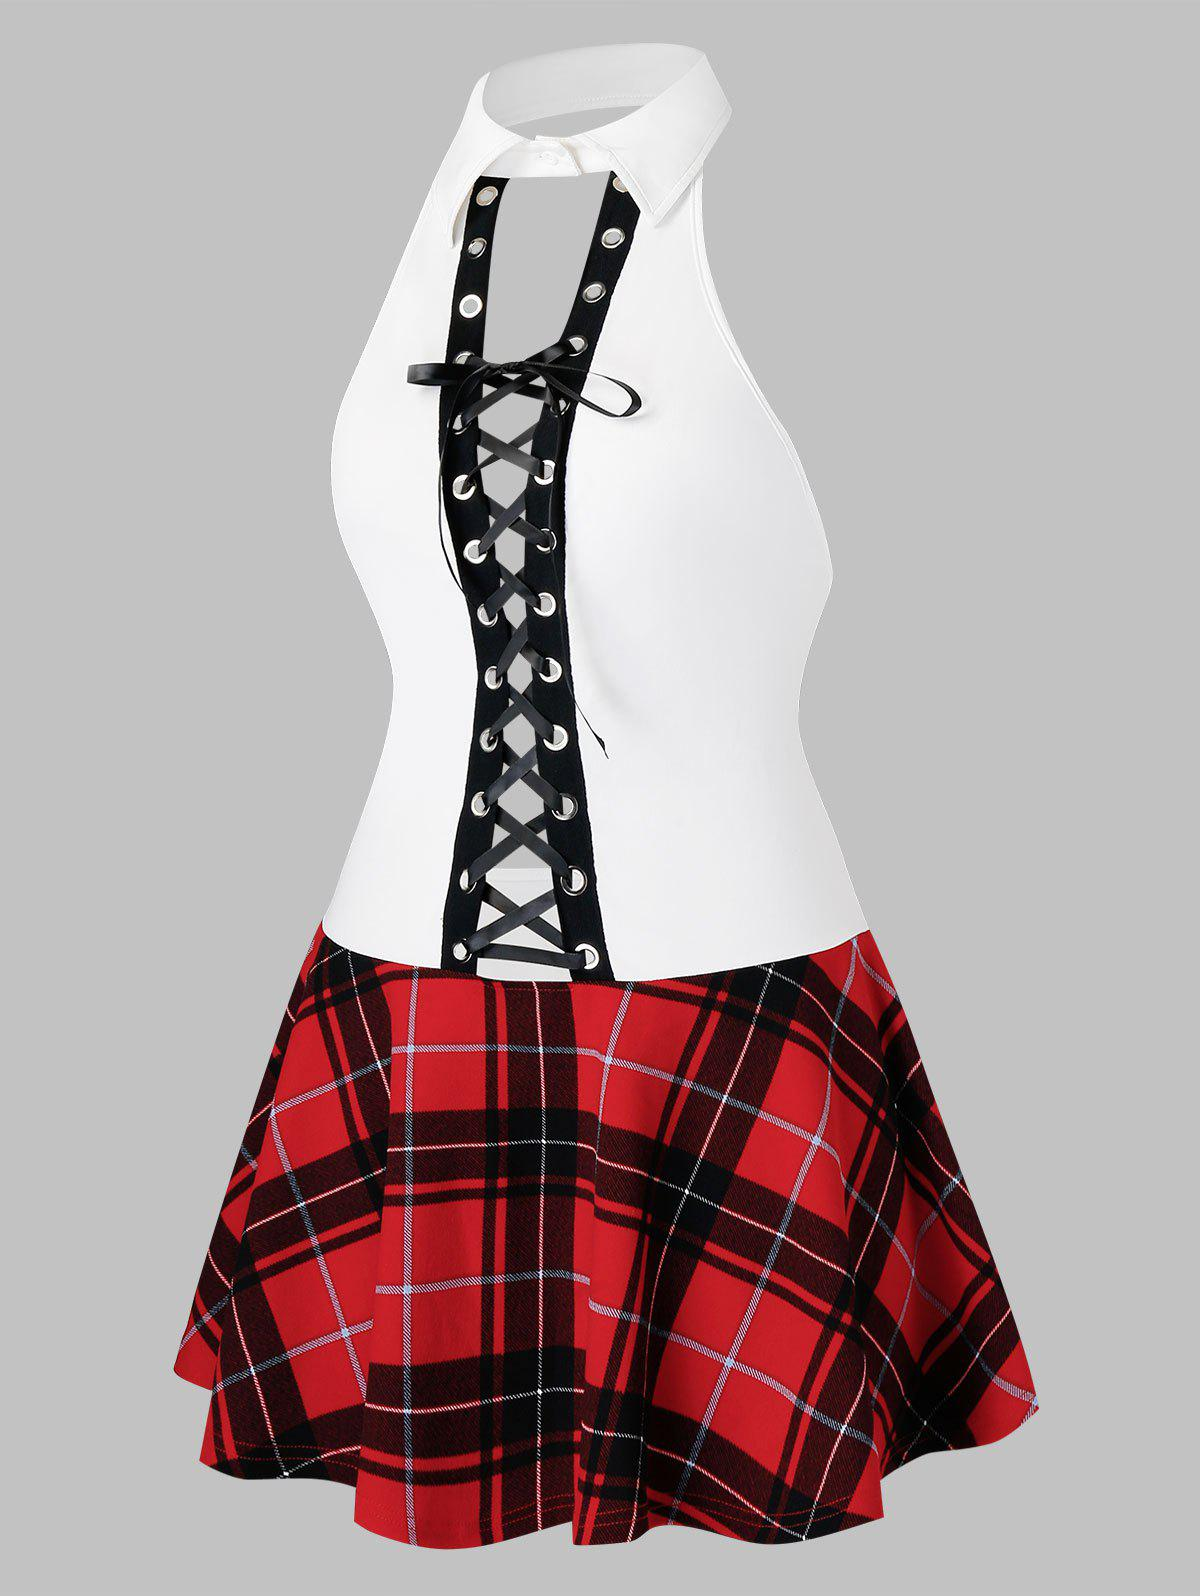 Plus Size Lace Up Plaid Schoolgirls Cosplay Lingerie Dress - CHESTNUT RED 2X